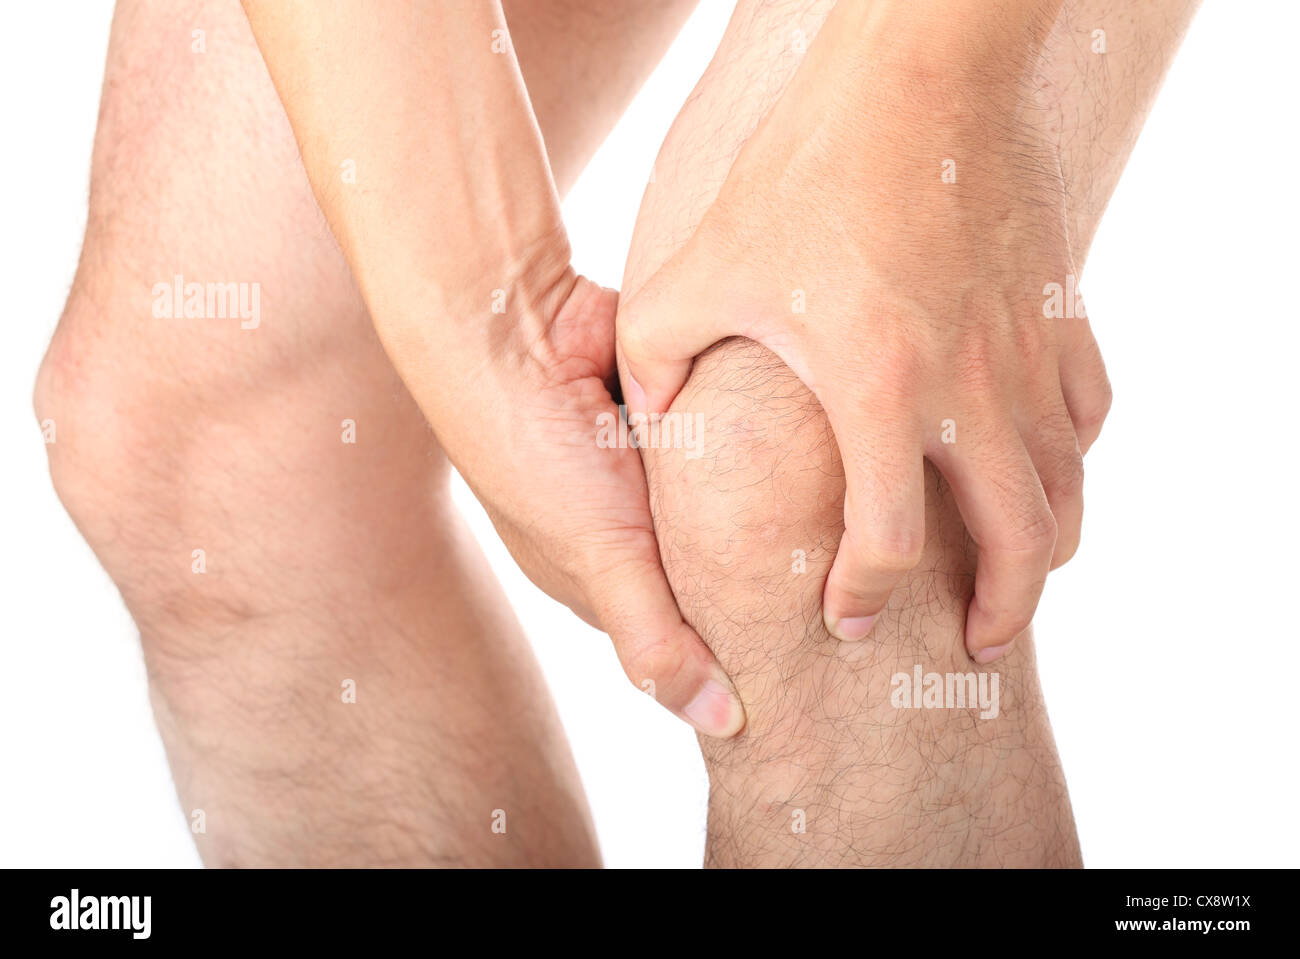 Man with knee pain on white background Stock Photo